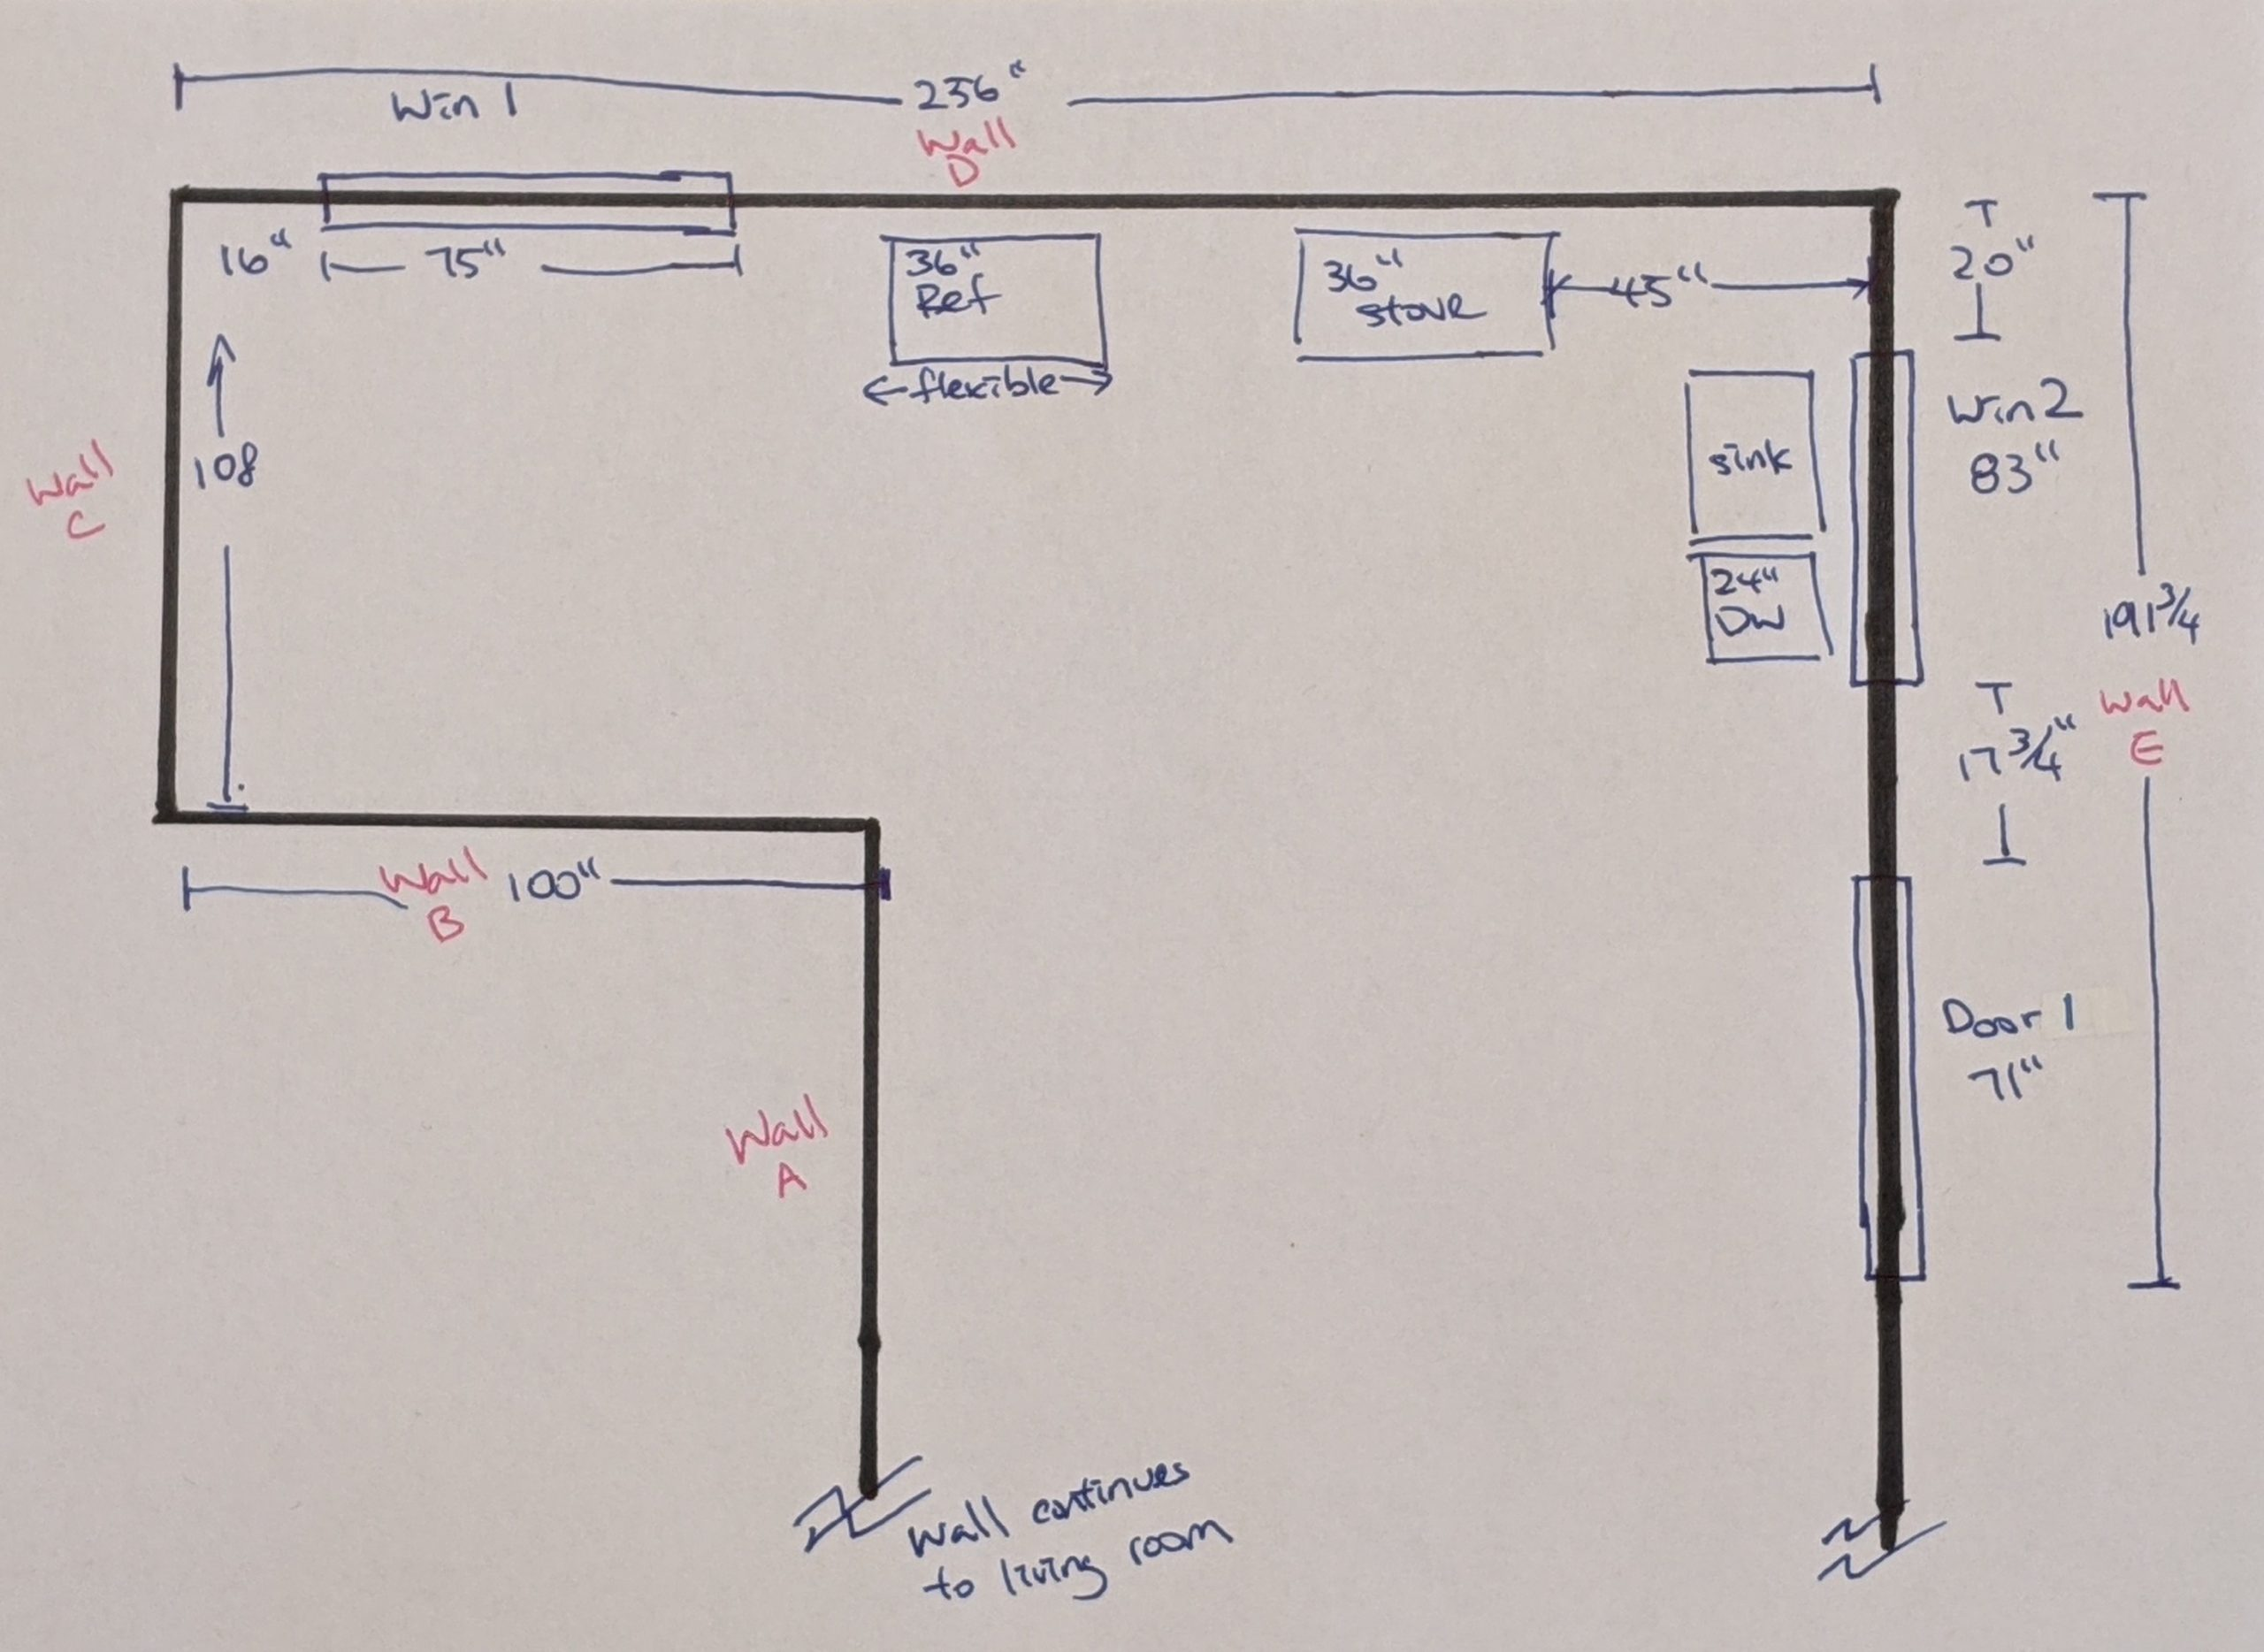 A sketch of a room with measurements for windows and door openings.  Appliance locations are also noted.